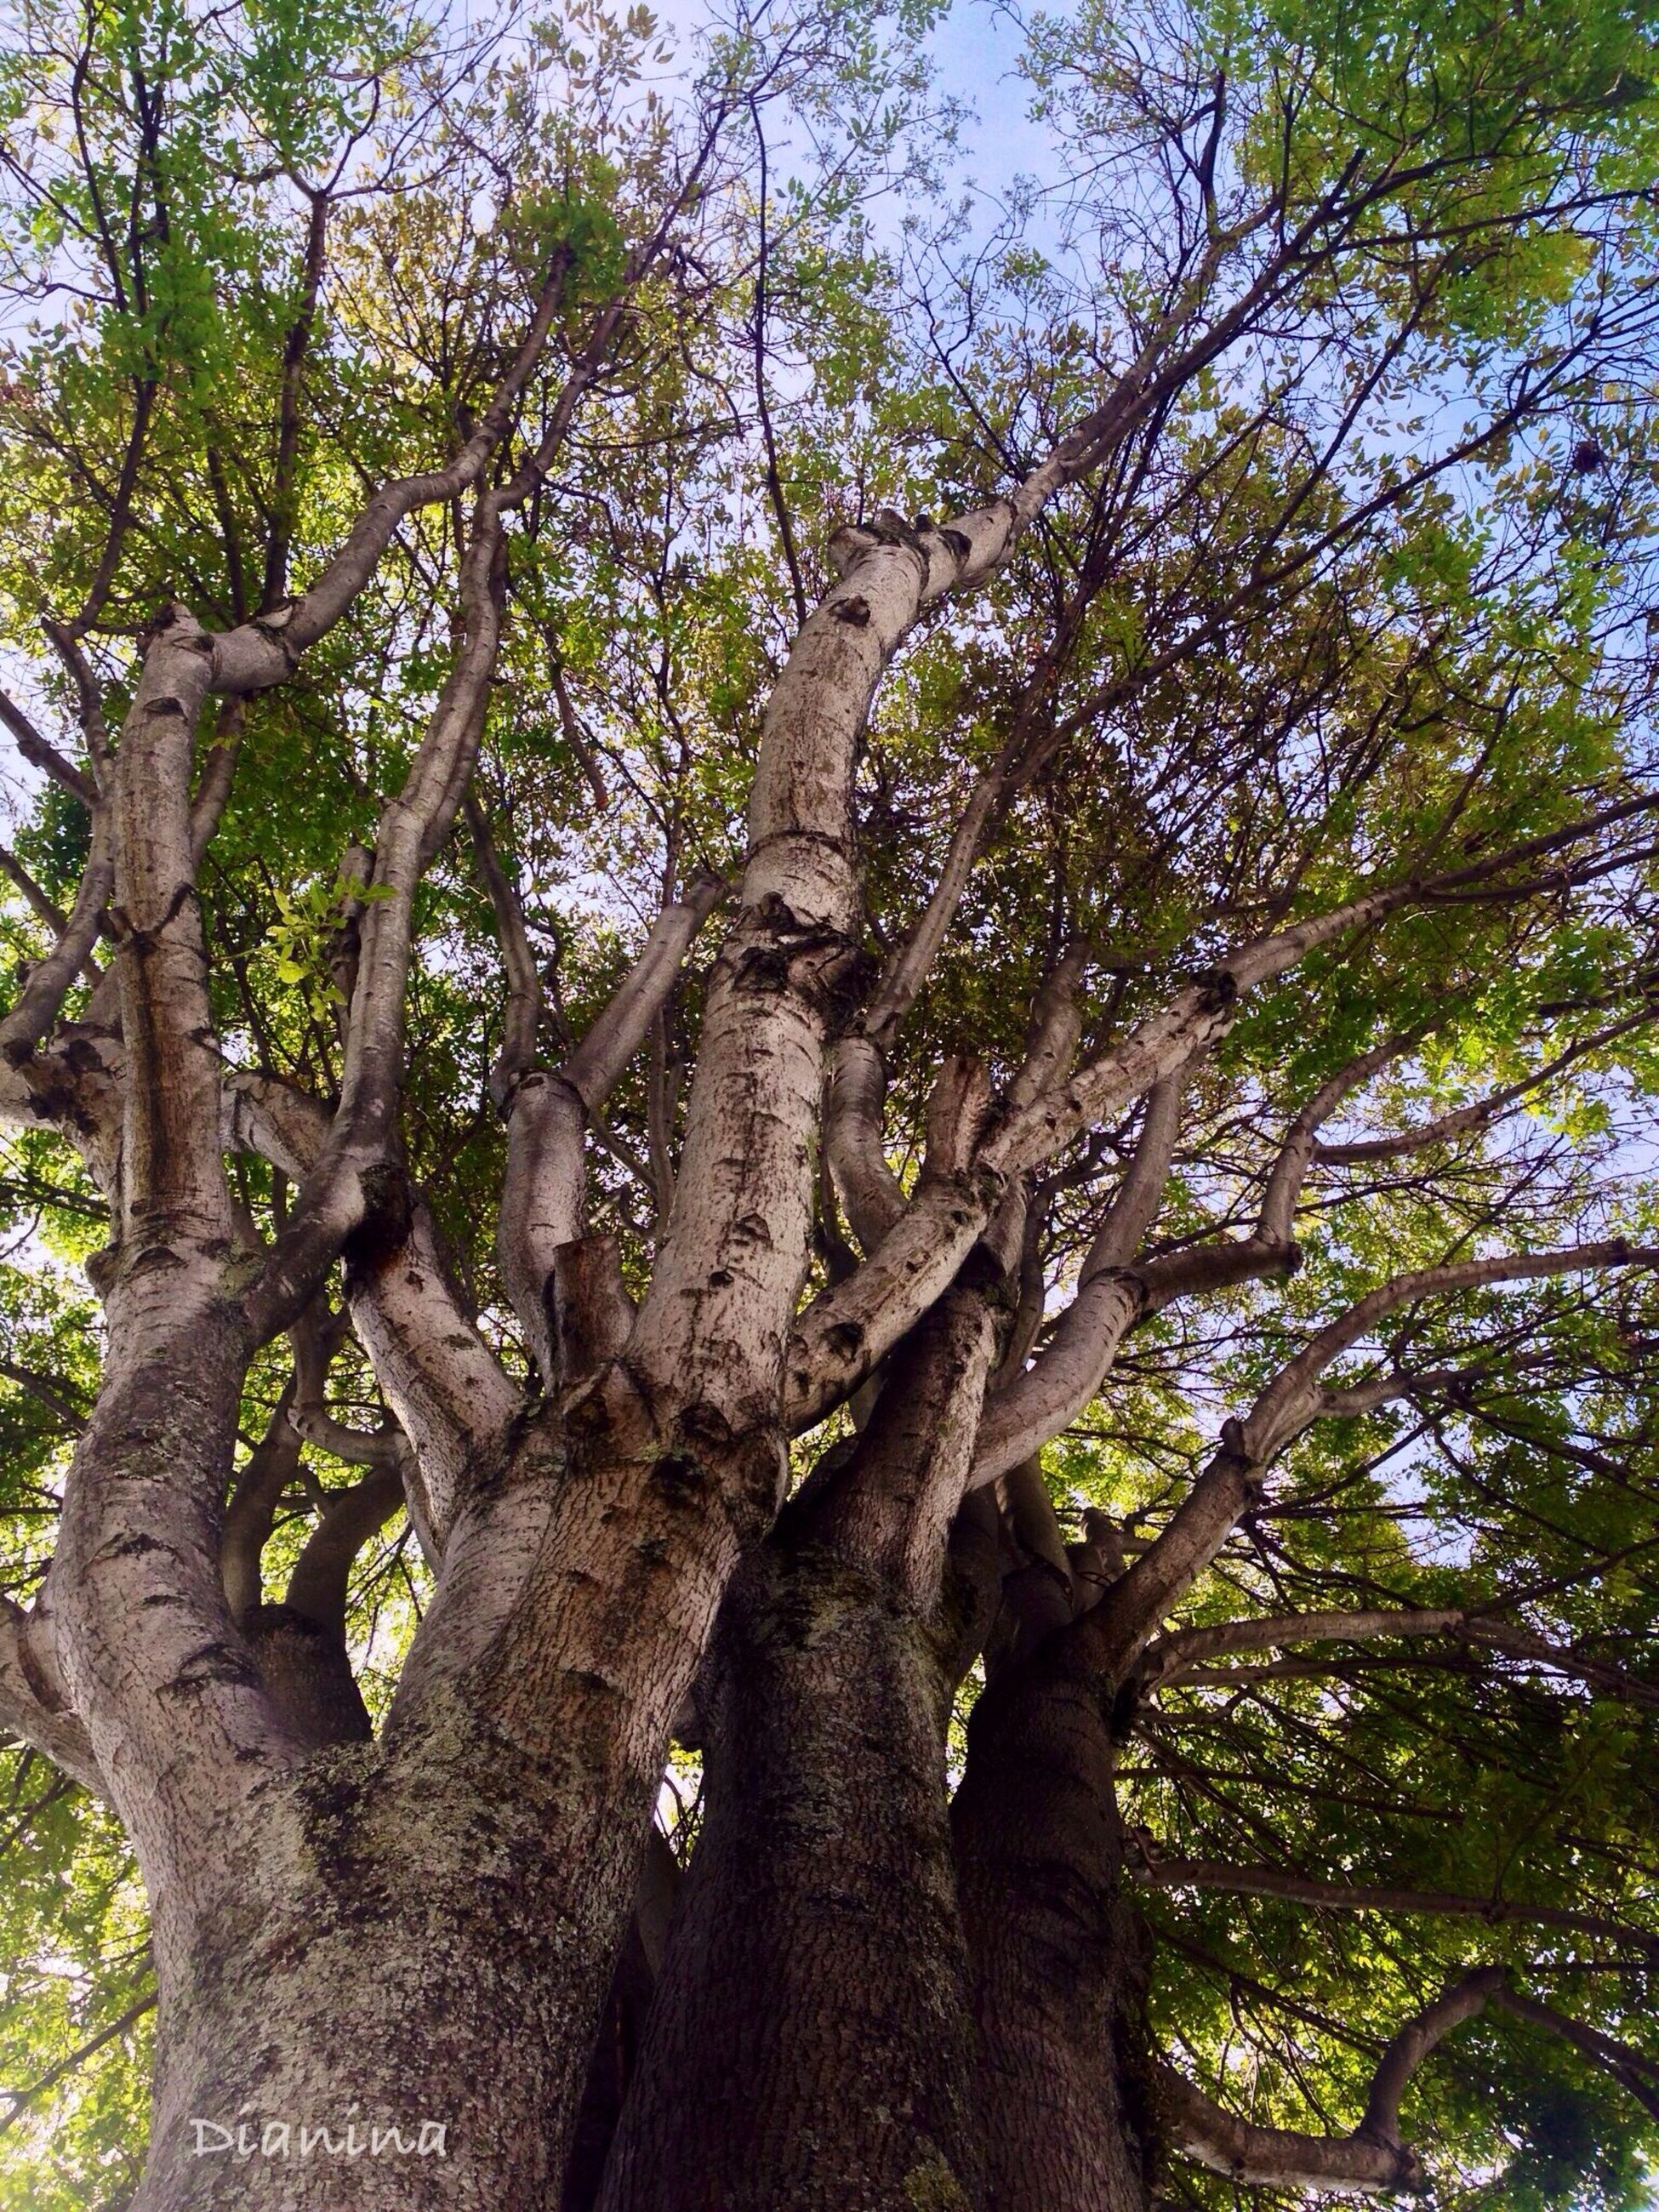 tree, low angle view, tree trunk, branch, growth, nature, tranquility, sky, forest, day, beauty in nature, outdoors, green color, no people, wood - material, tall - high, sunlight, bark, woodland, scenics